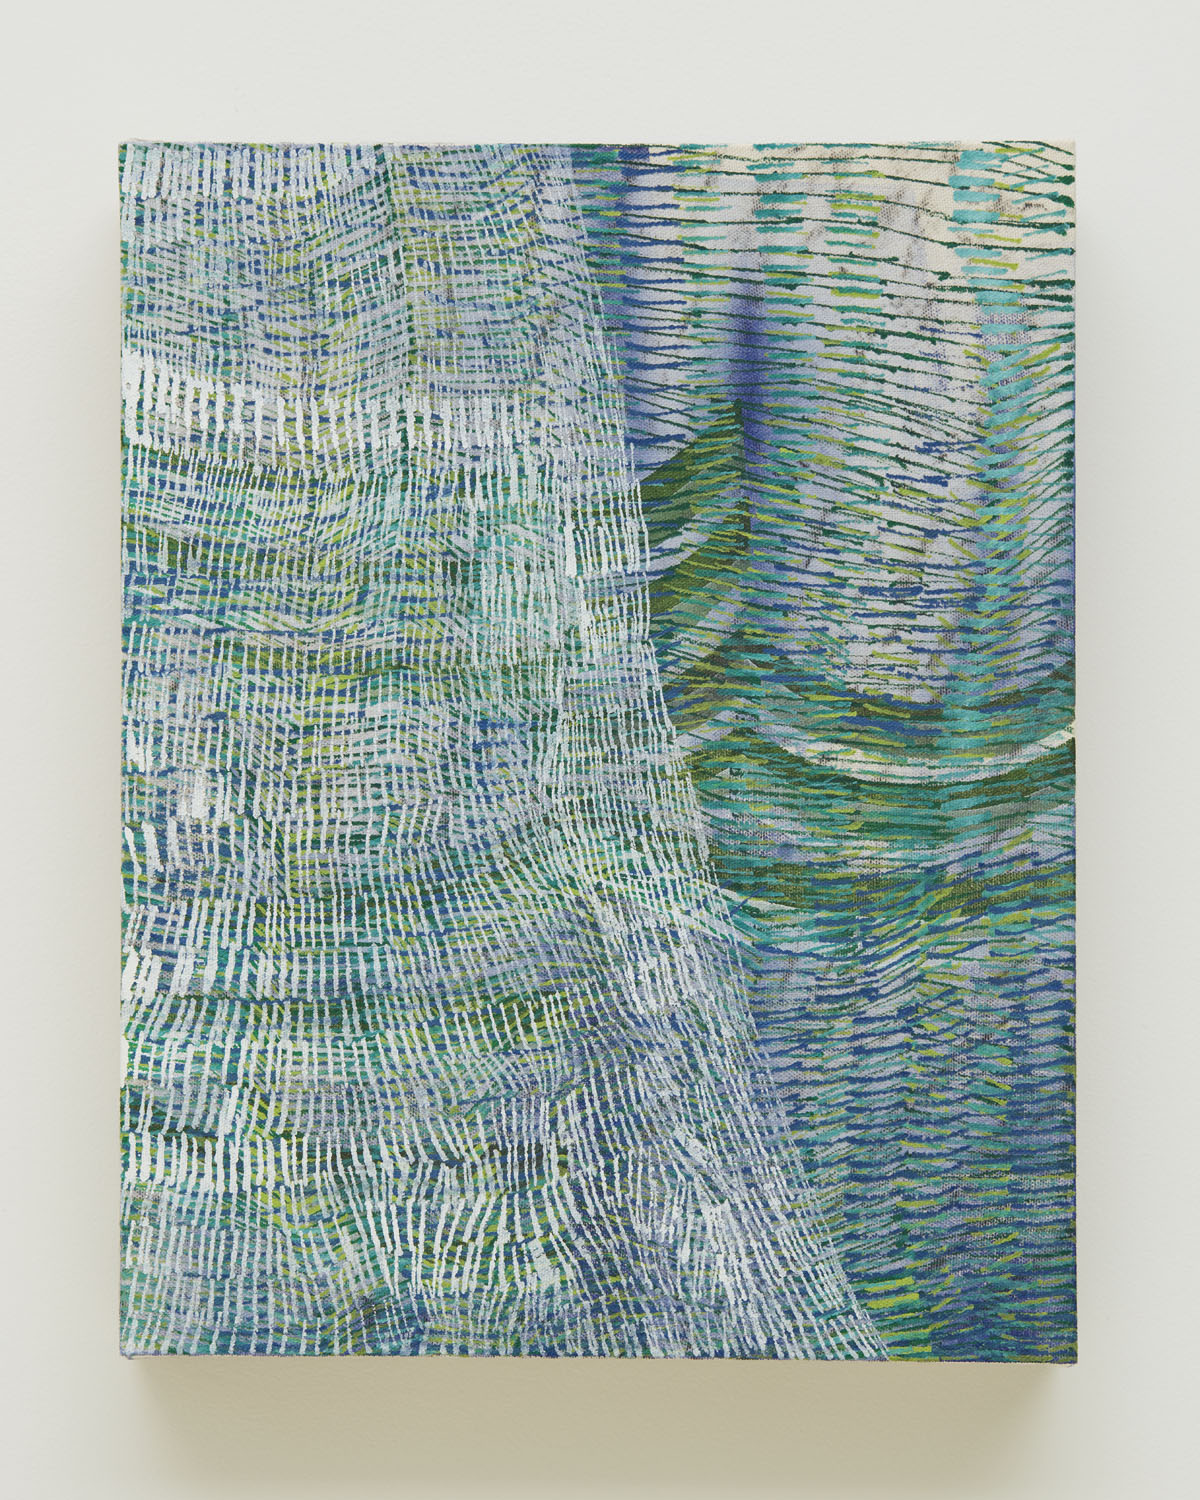 See Through, 2017, by Alyse Rosner, translucent white, blue and green,  fine line pattern, graphite and acrylic painting on raw canvas.